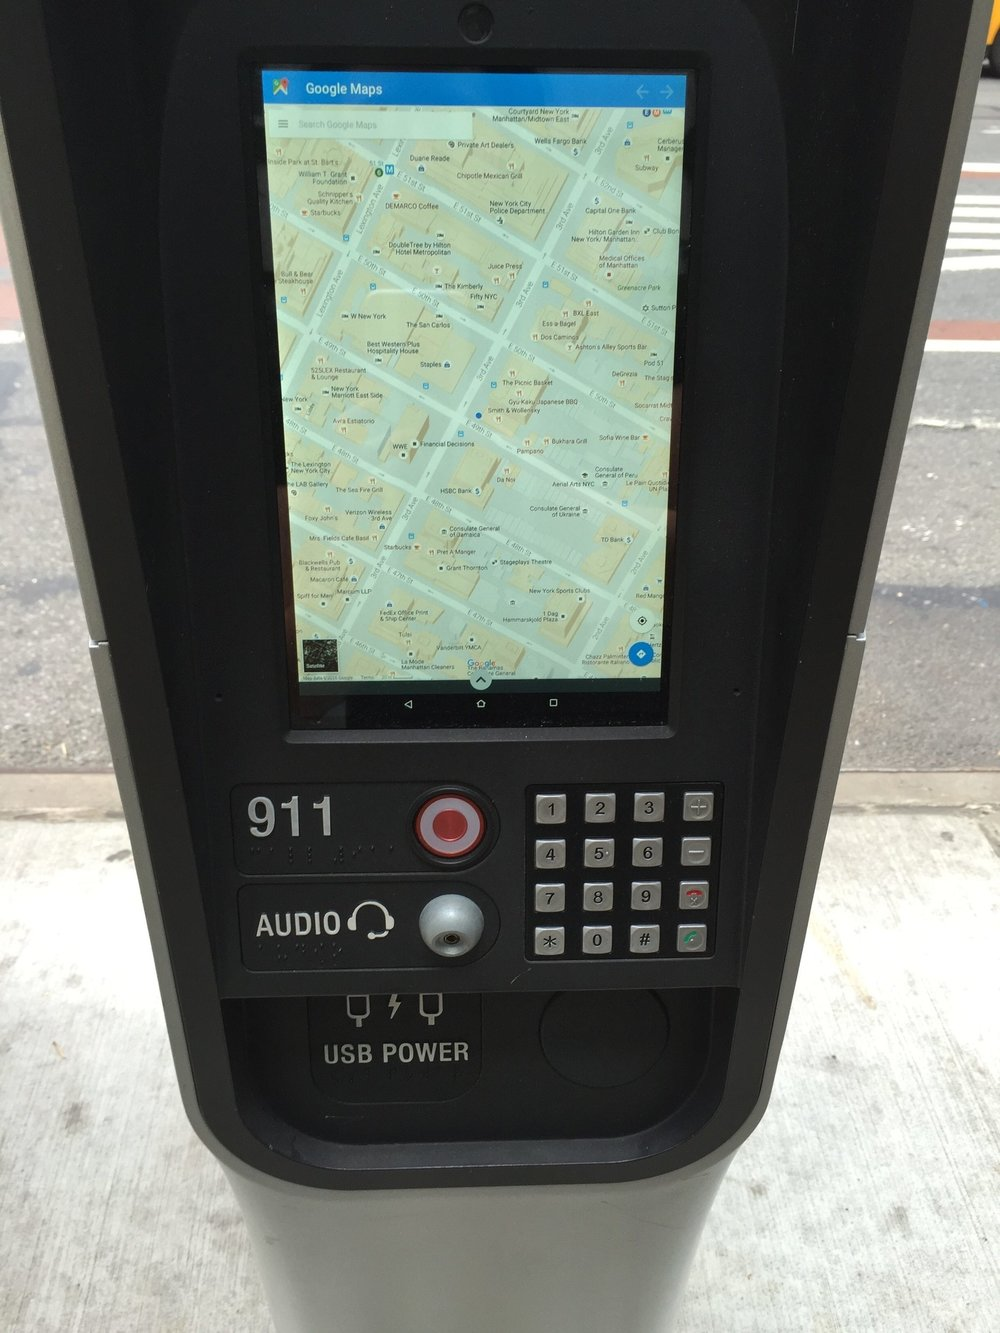 - The tourist used the map function to determine where they needed to go next and proceeded on their way.